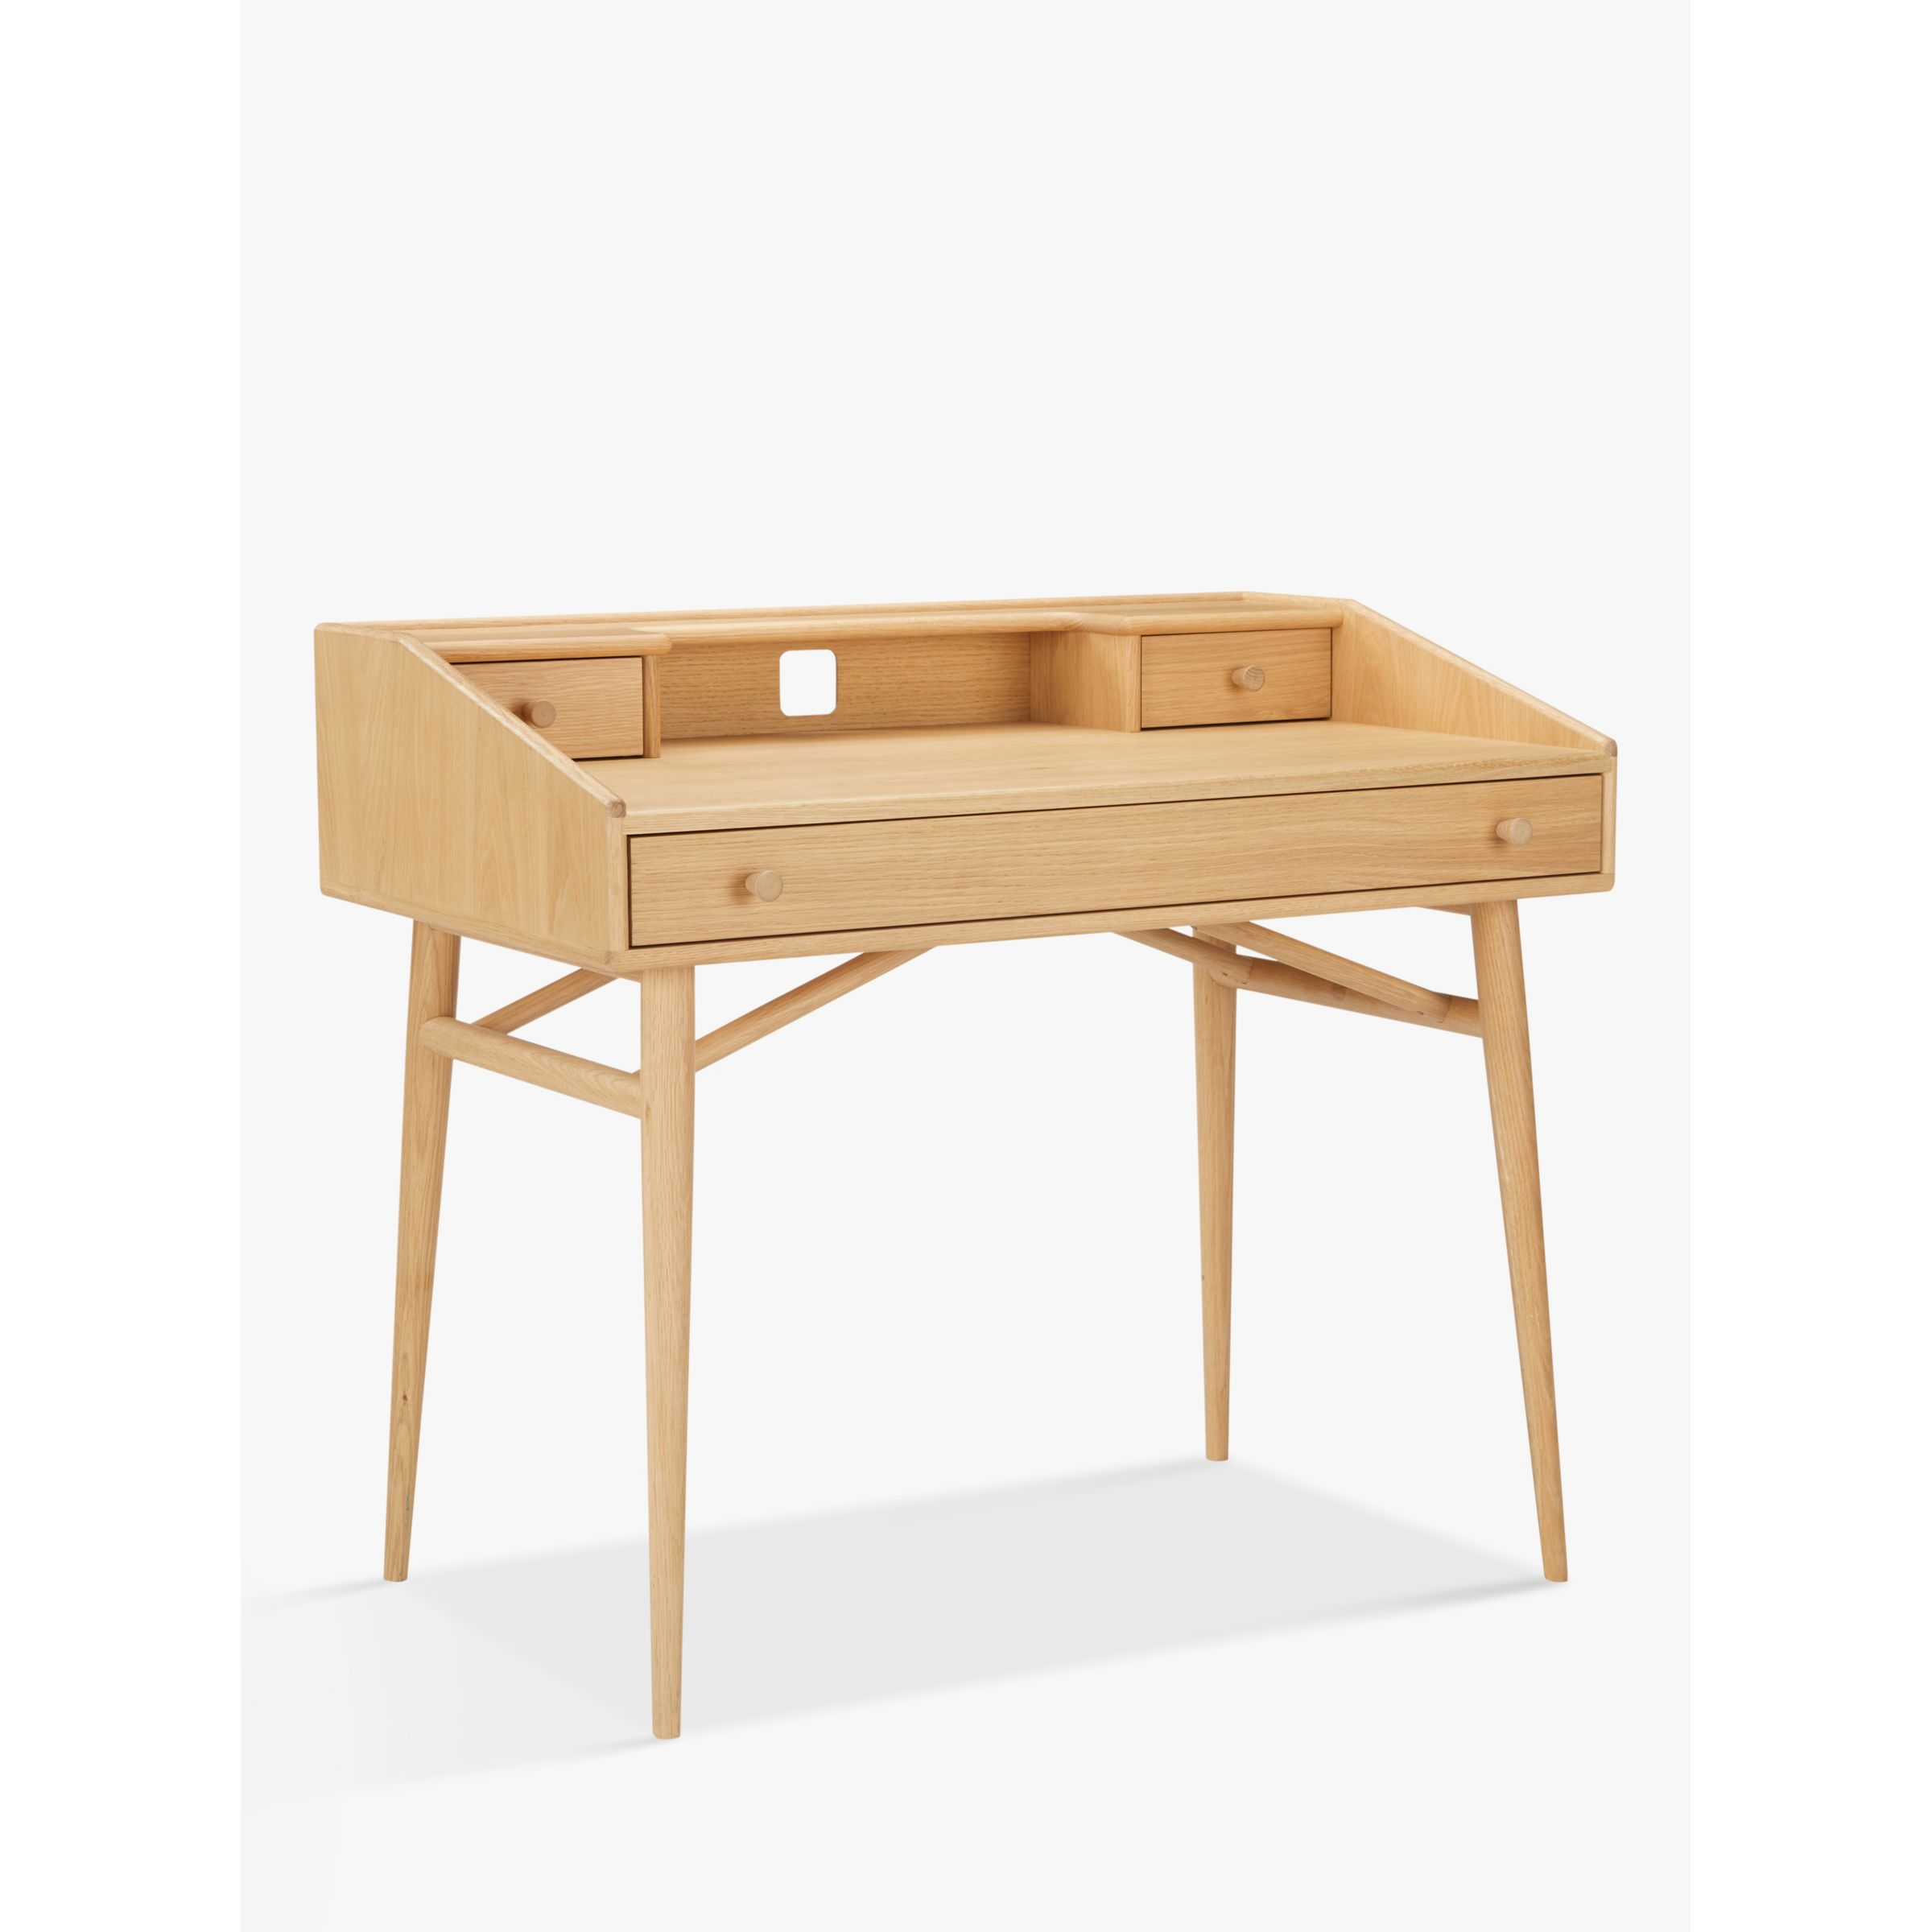 ercol for John Lewis ercol for John Lewis Shalstone Desk, Oak